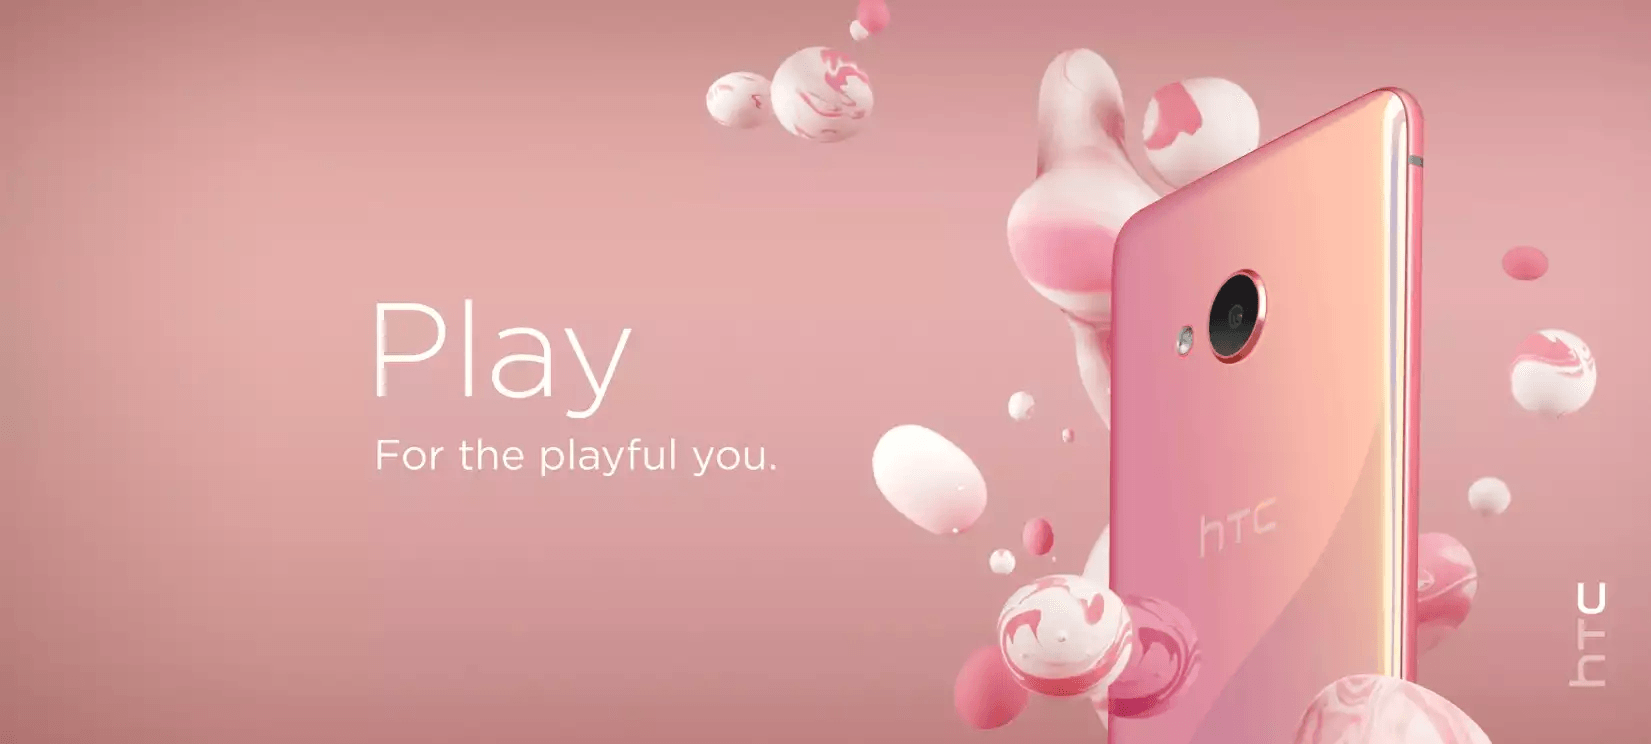 HTC U Play Launched With Mediatek Helio P10 Processor And No 3.5mm Audio Jack